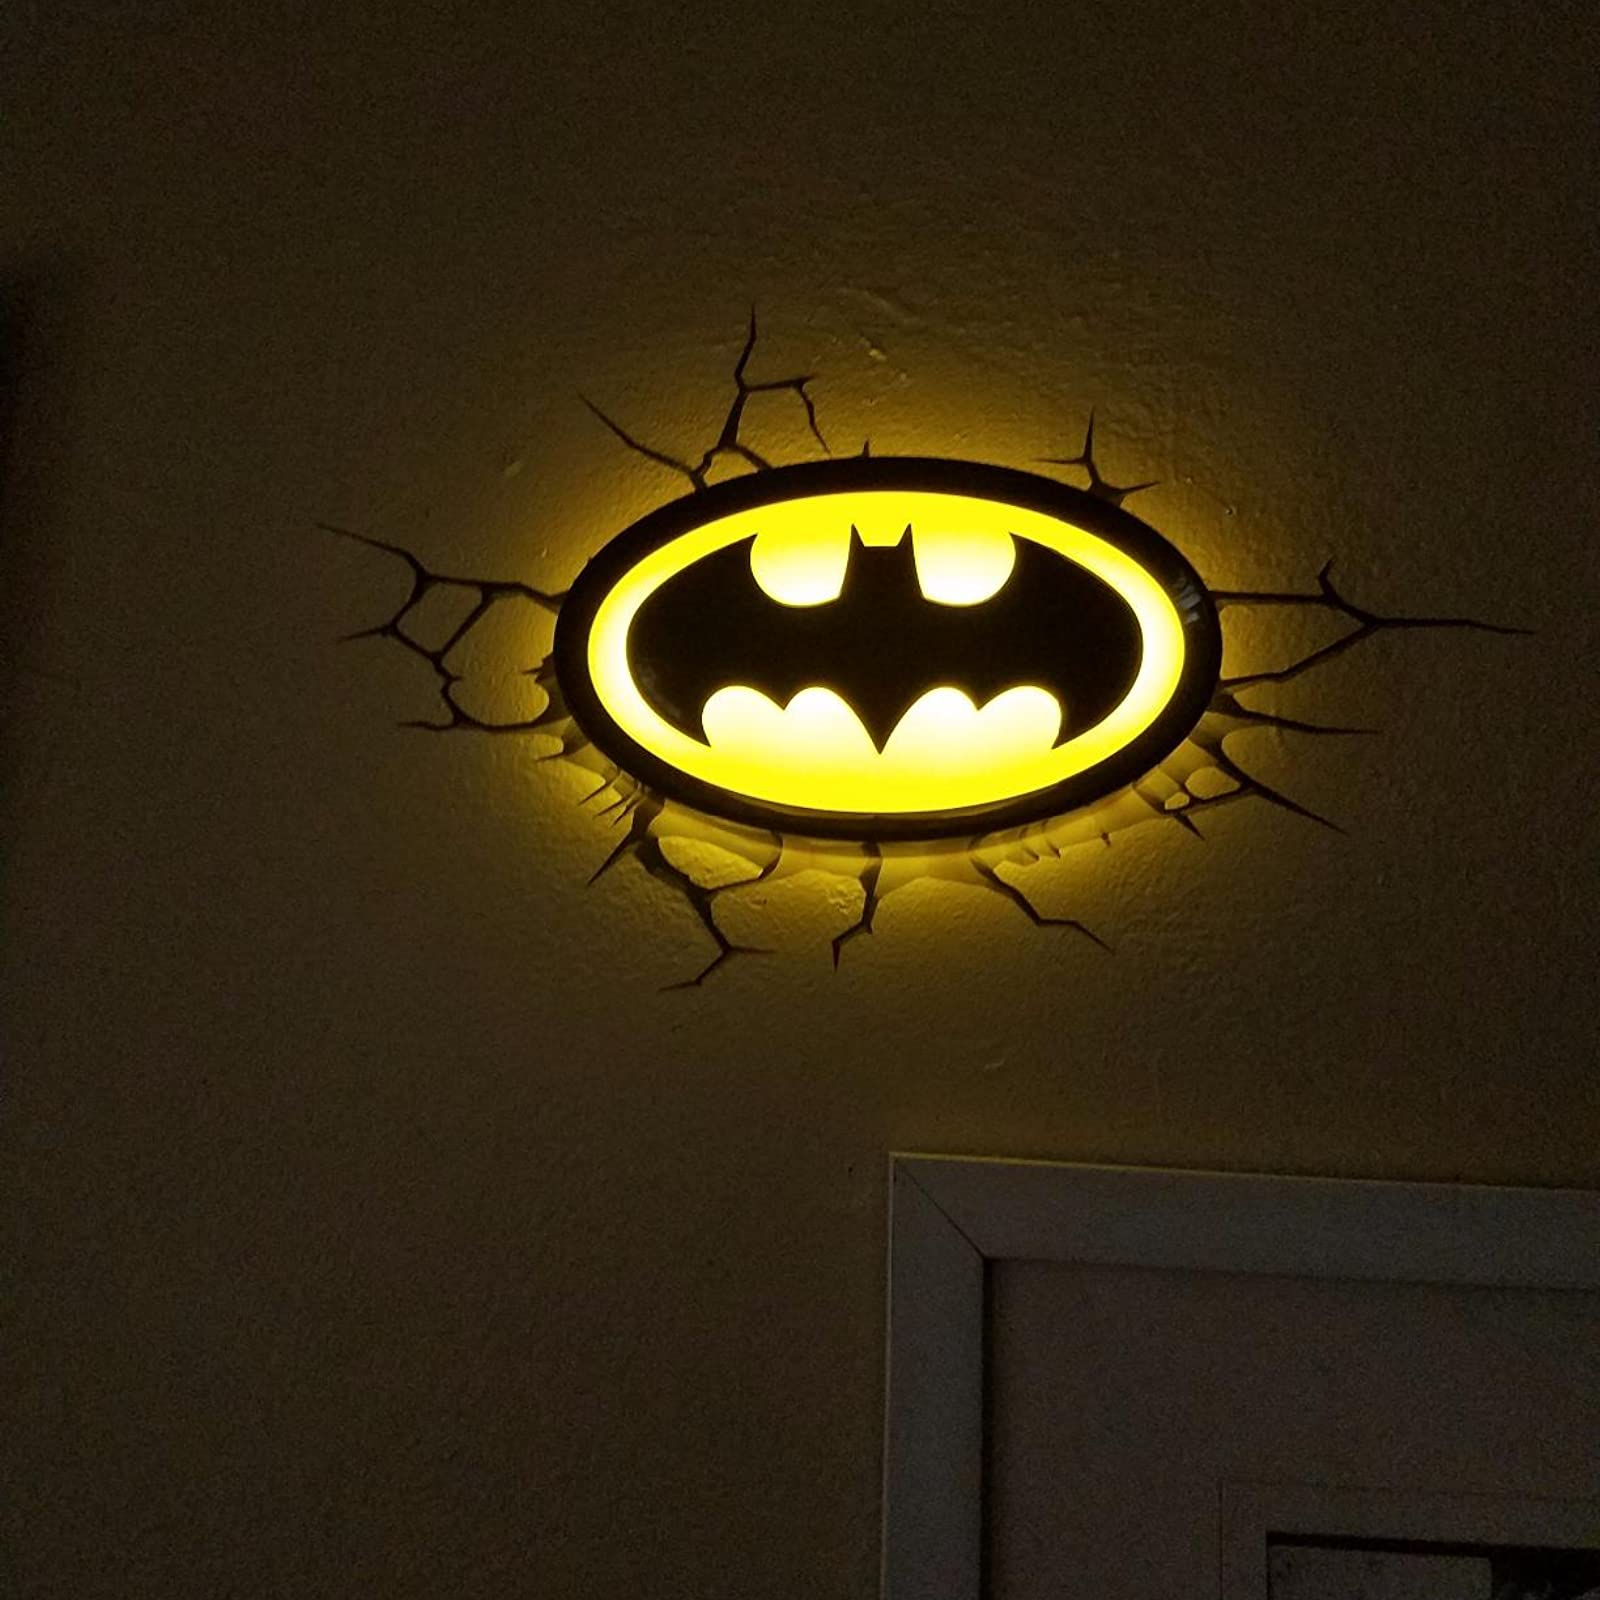 Batman logo 3d light fx batman wall decro light 816733020204 ebay light up your man cave bedroom office or bathroom with the 3d deco night light when mounted to the wall with the crack sticker the light looks like it mozeypictures Images